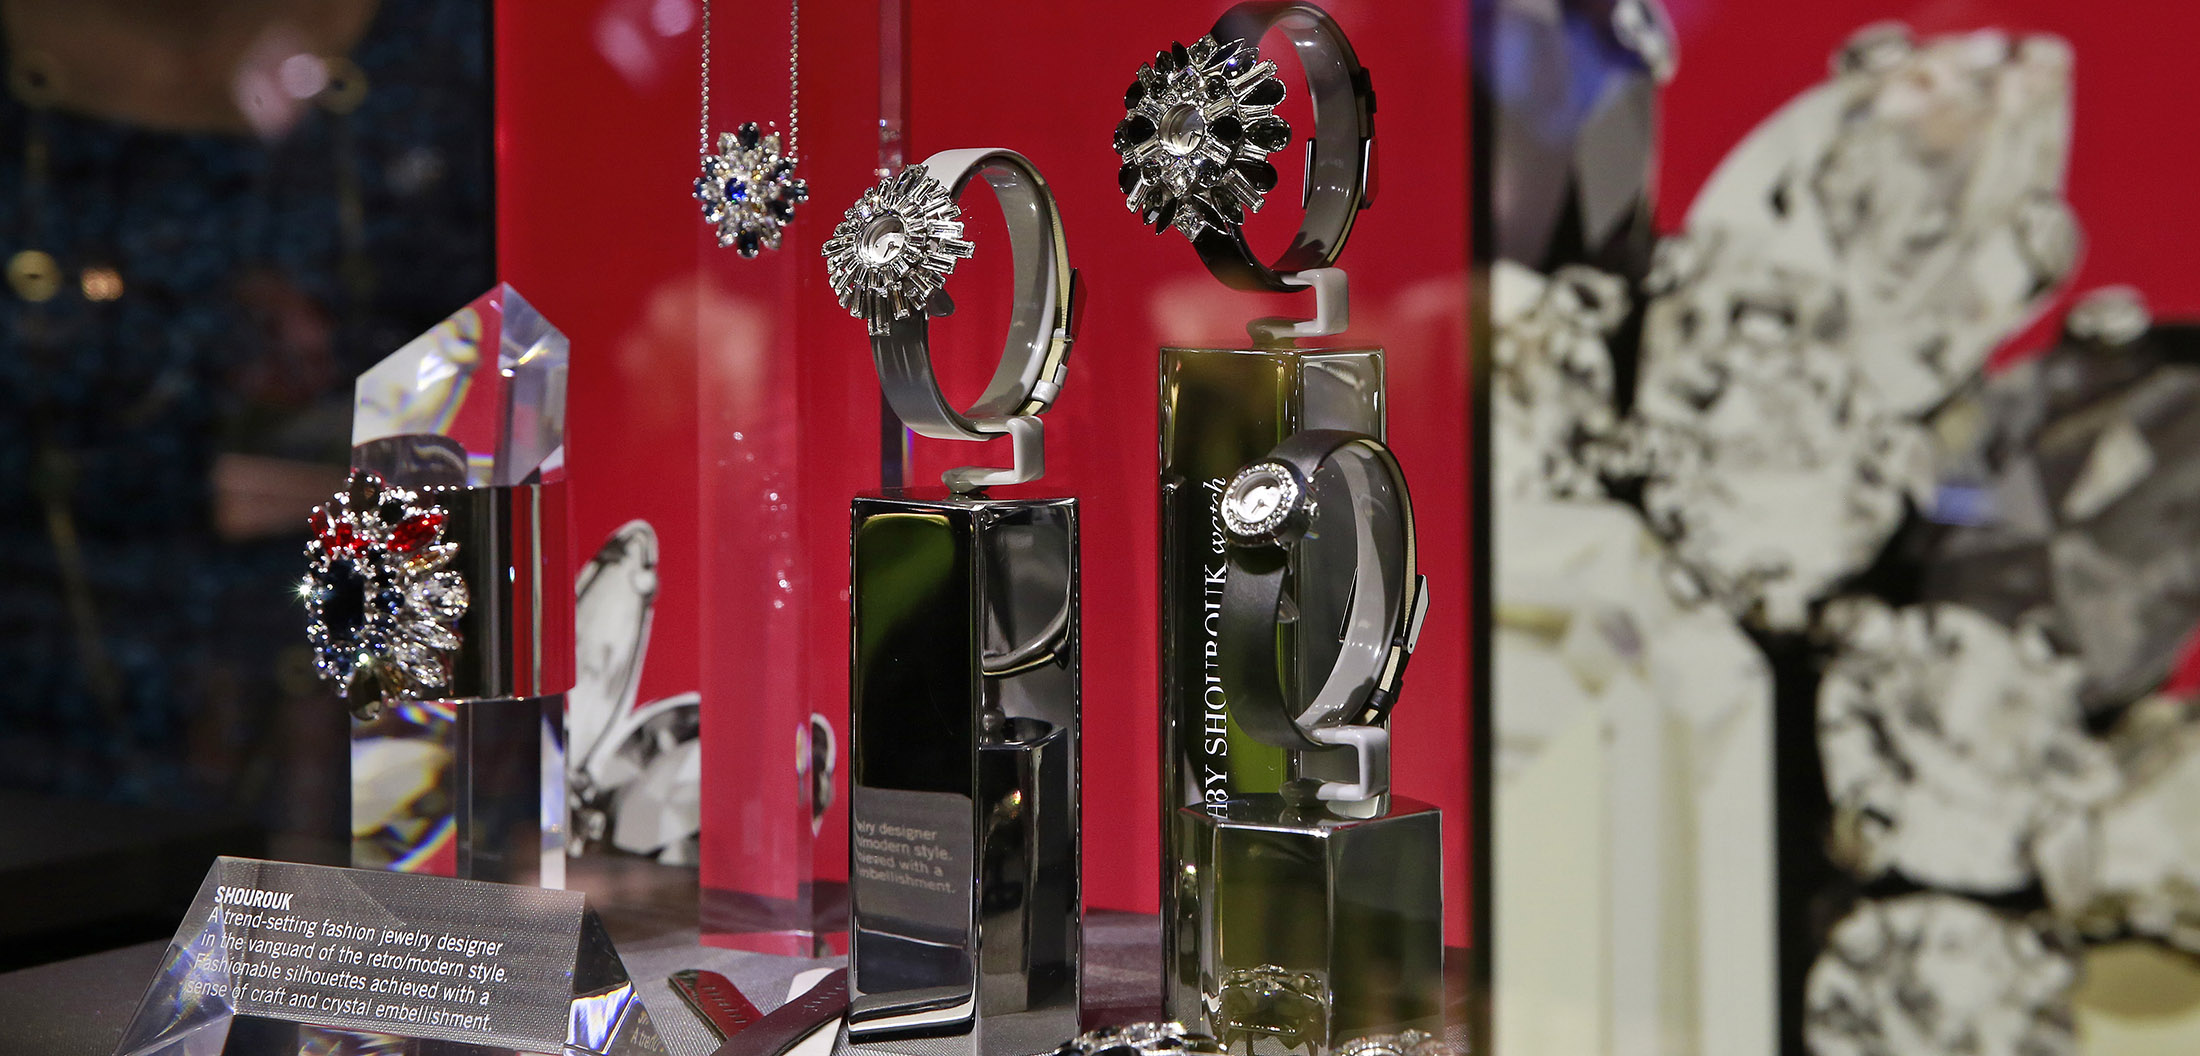 04a1e253e44b Swarovski Says an IPO Could Help Propel Jeweler s Expansion - Bloomberg